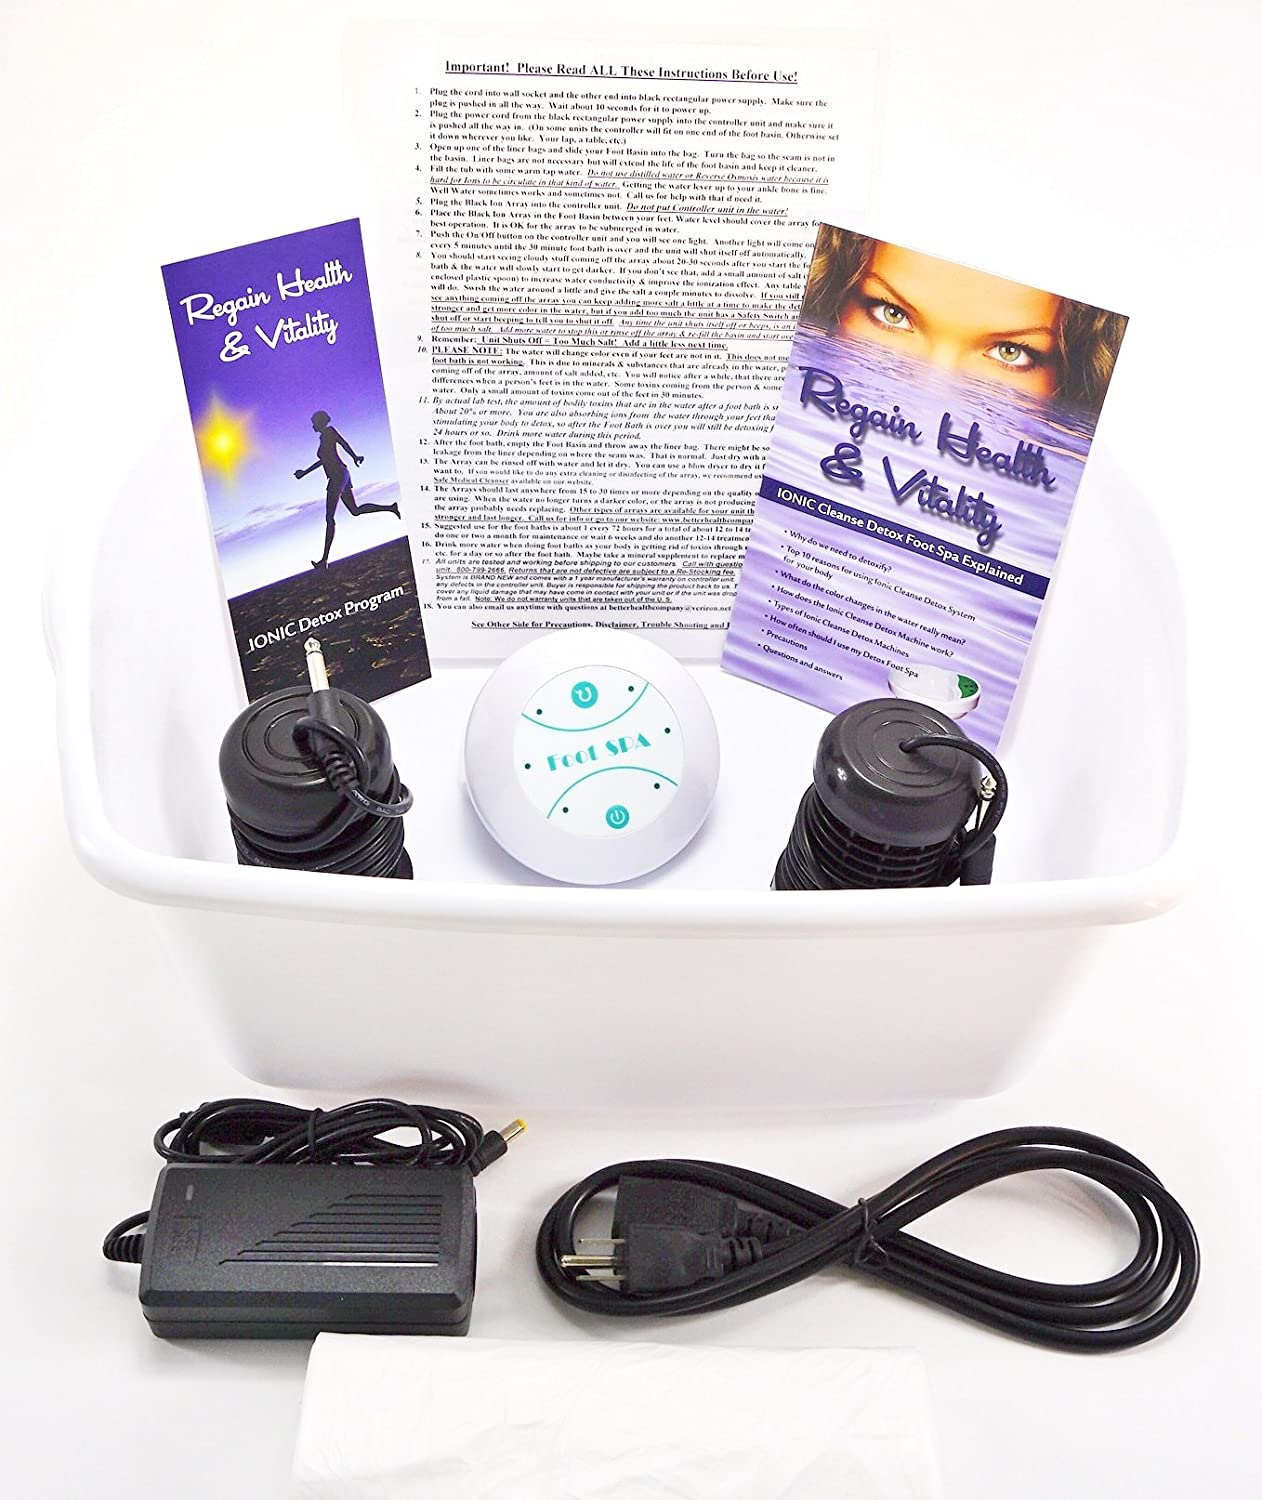 Amazon ionic foot cleanse detox foot bath machine foot spa detox foot bath machine foot spa bath for home use free regain health vitality booklet brochure health personal care nvjuhfo Images